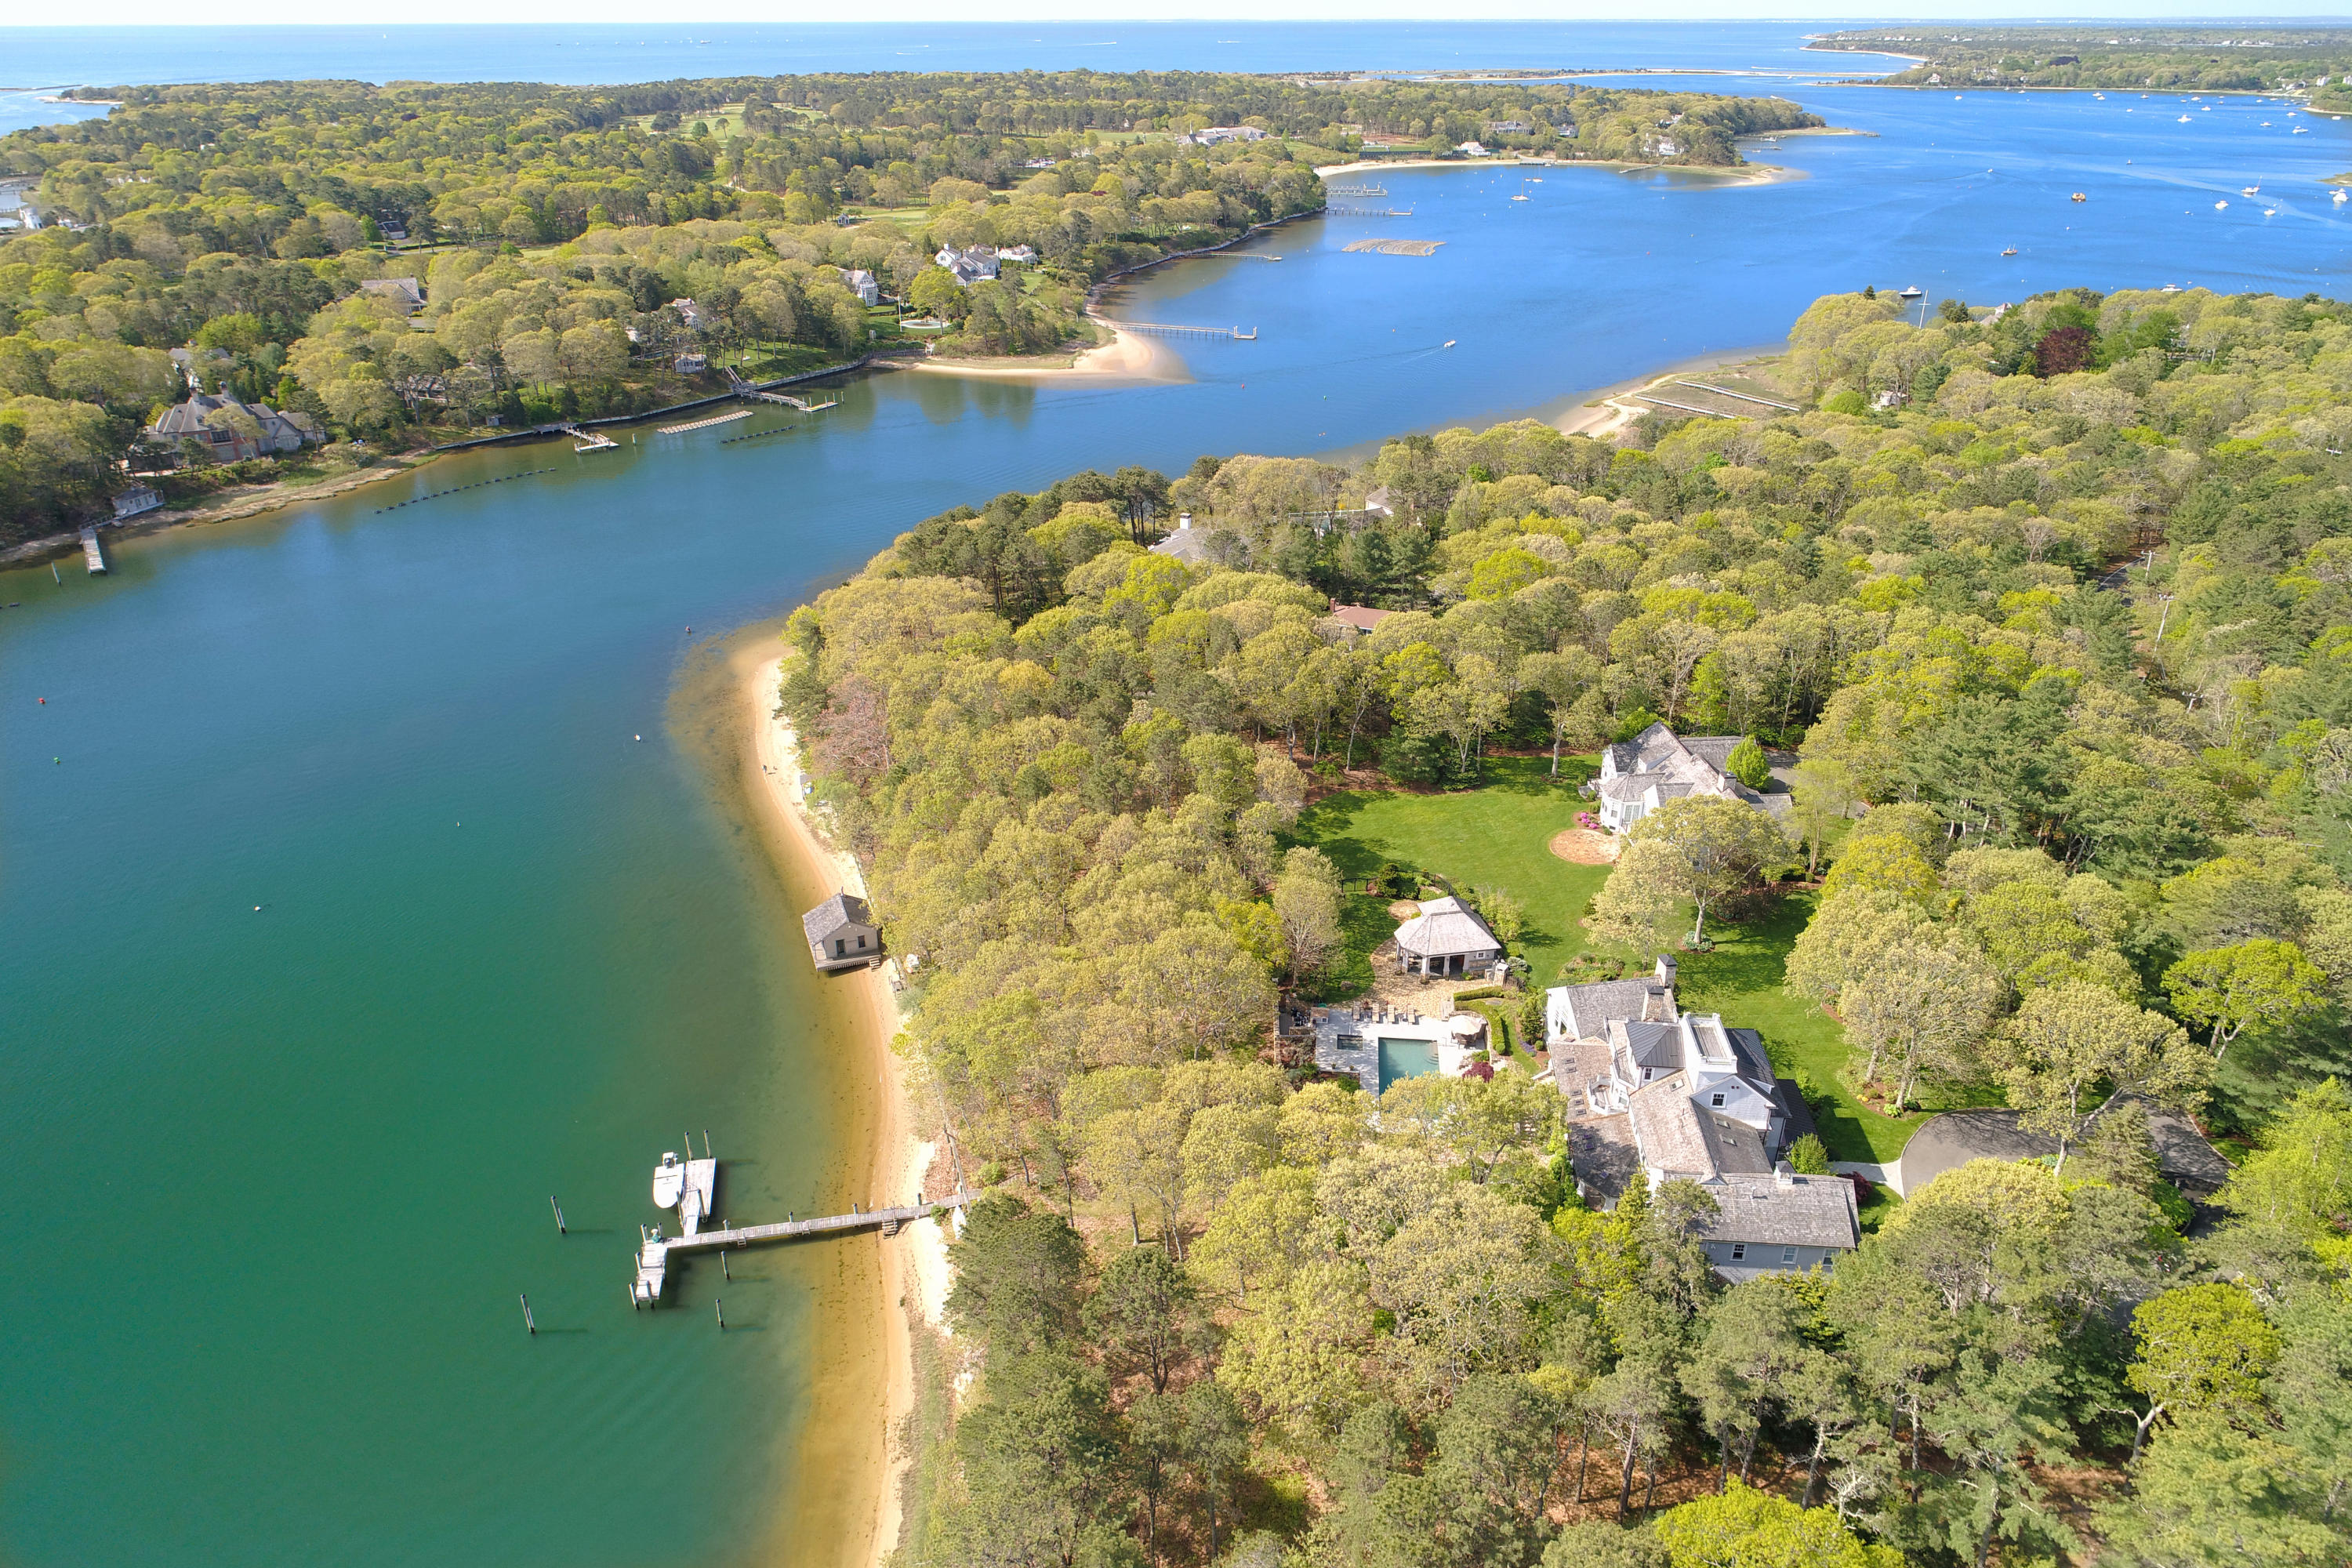 835 & 821 Old Post Road Cotuit MA, 02635 details